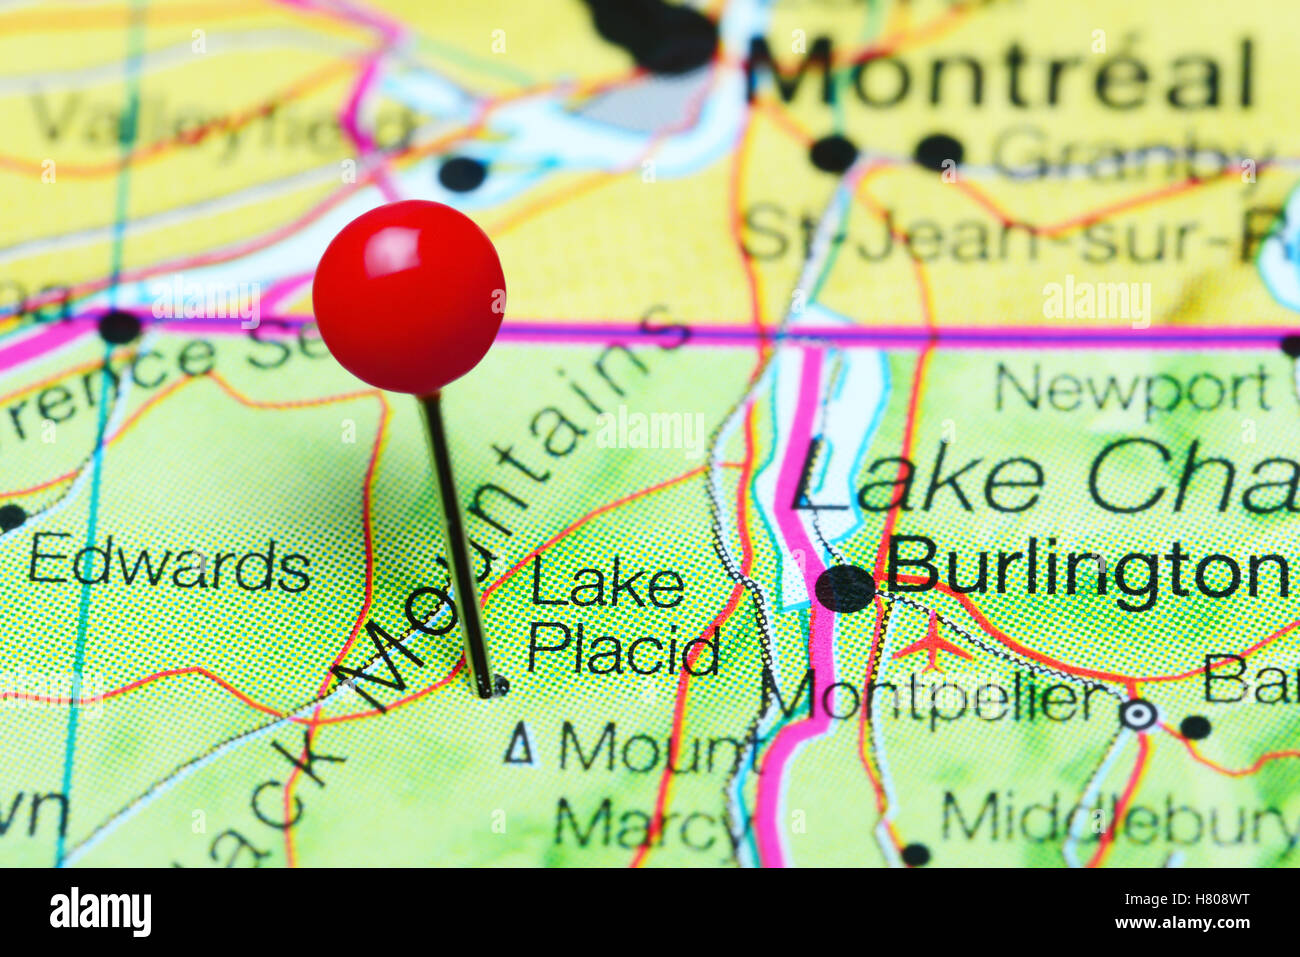 Lake Placid New York Map.Lake Placid Pinned On A Map Of New York State Usa Stock Photo